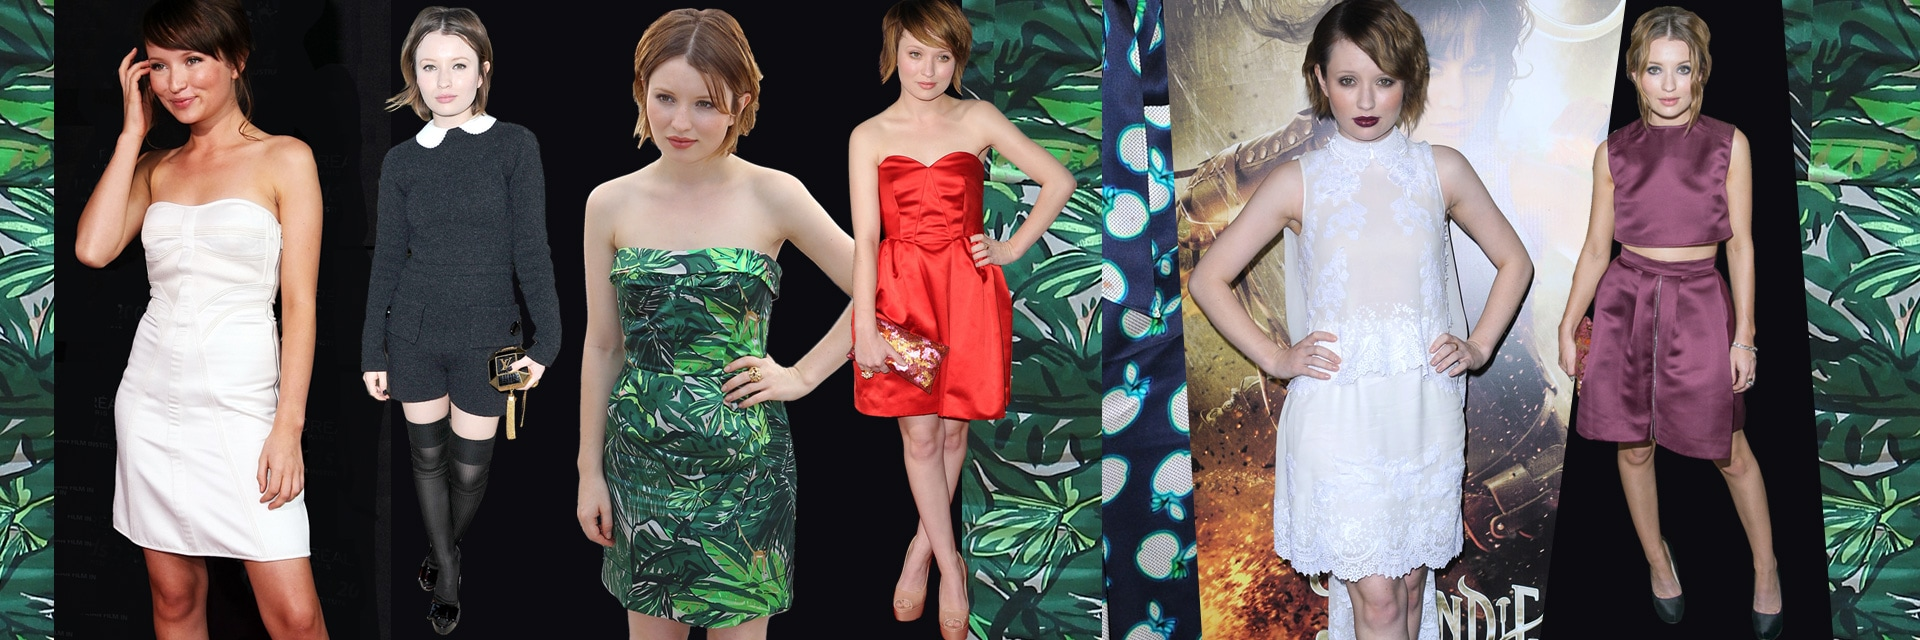 Emily Browning: lo stile preppy dell'attrice australiana